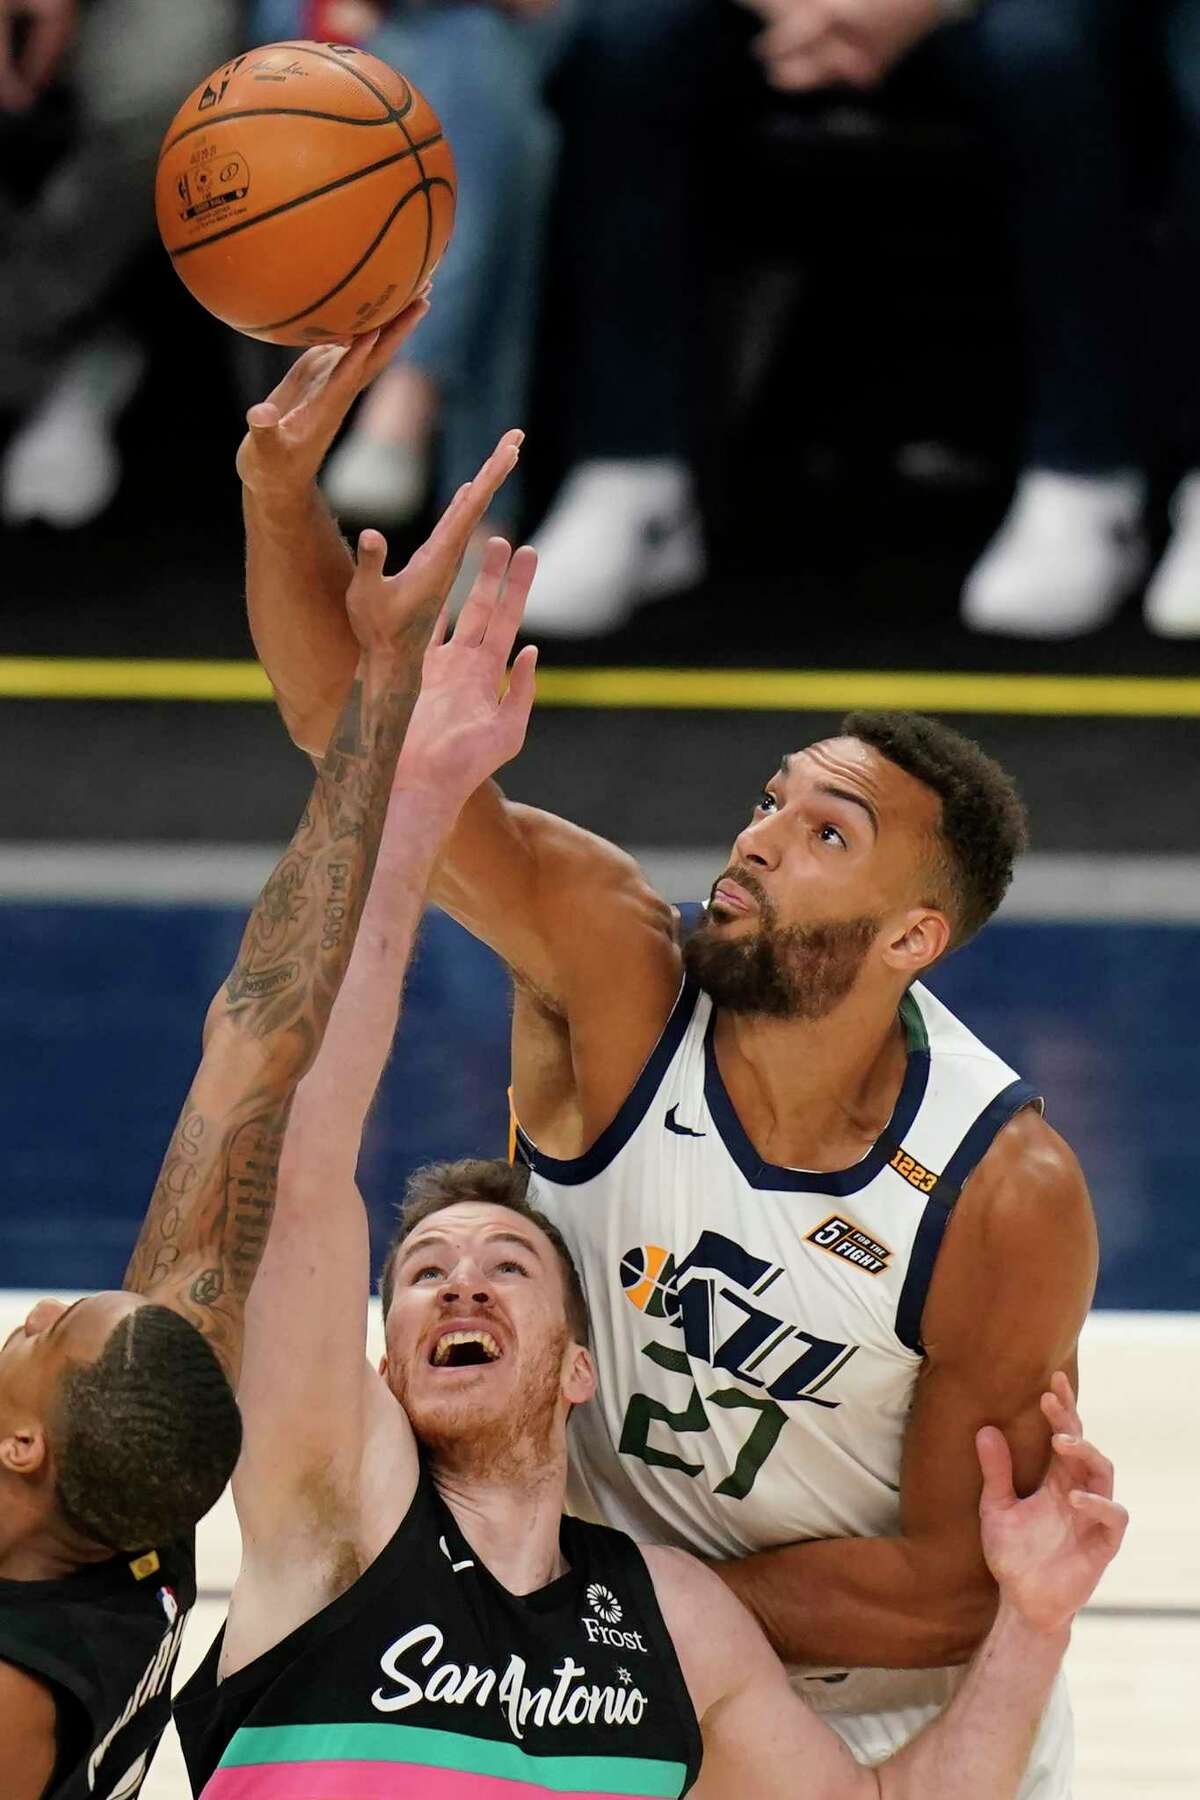 The Spurs' Jakob Poeltl, middle, and Utah Jazz center Rudy Gobert (27) reach for a rebound during the first half of an NBA basketball game Wednesday, May 5, 2021, in Salt Lake City.